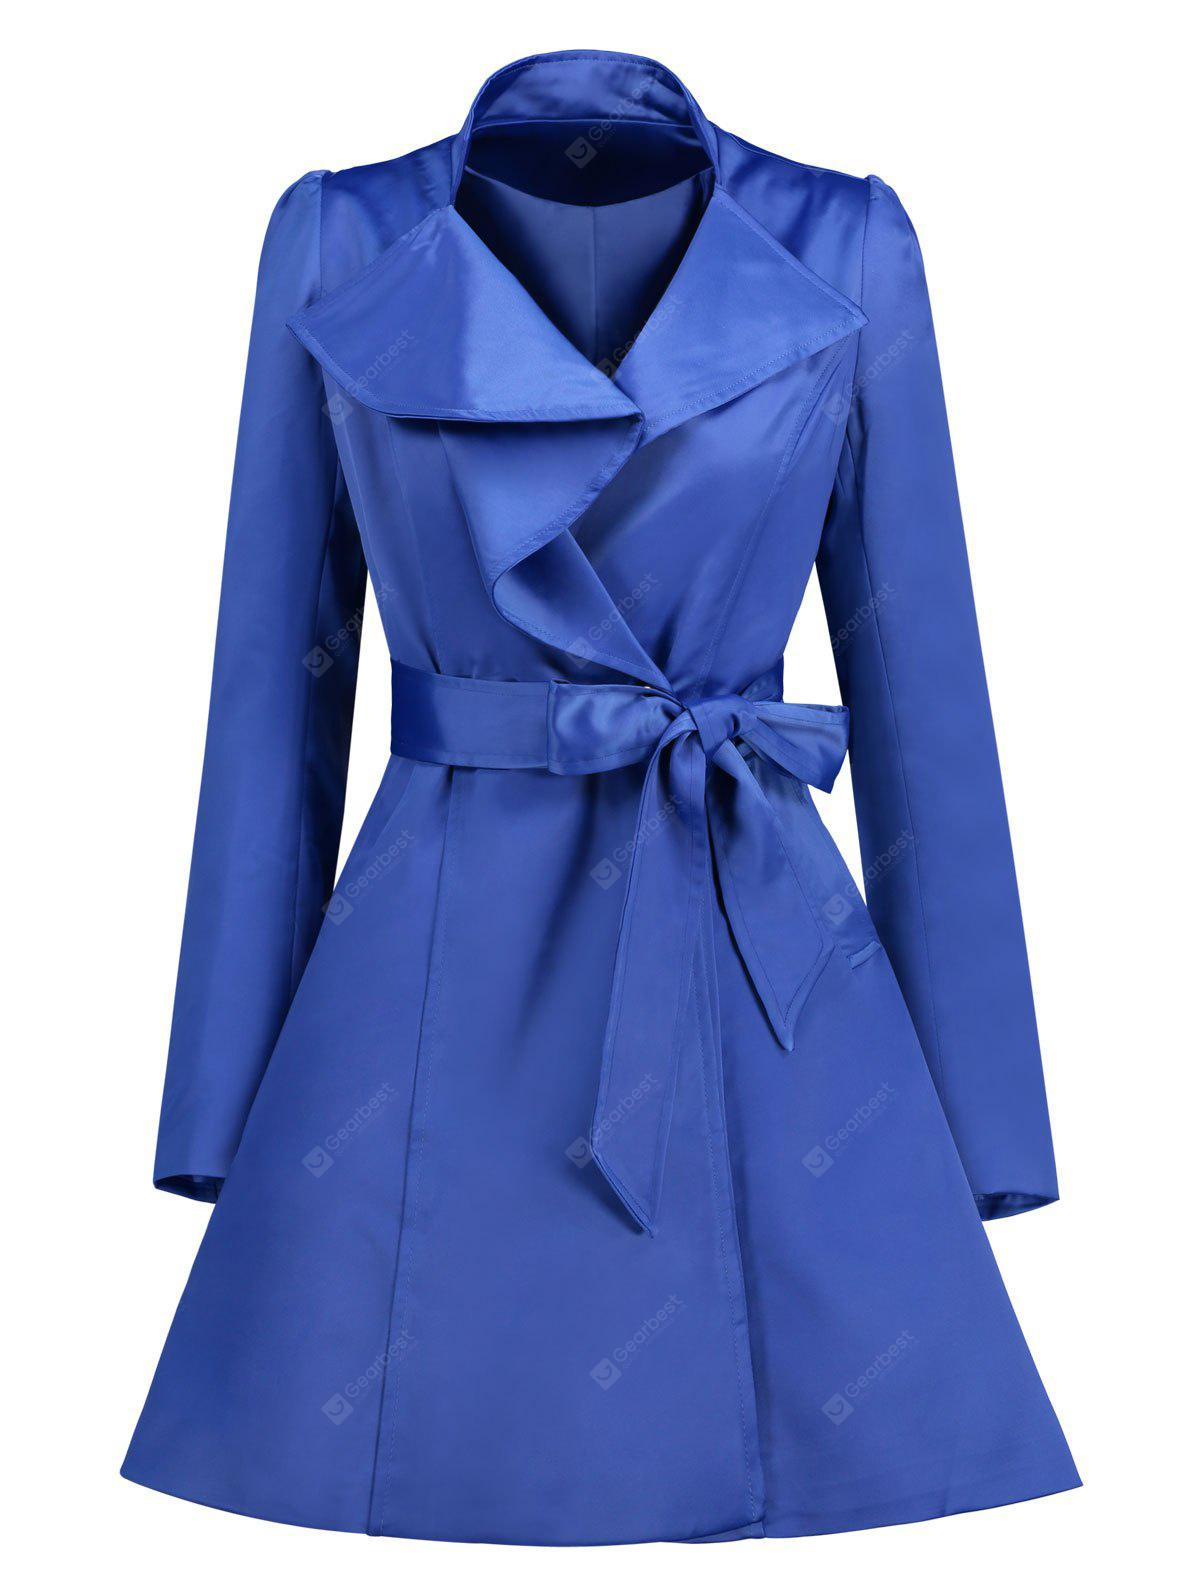 Turn-down Collar Skirted Coat with Belt